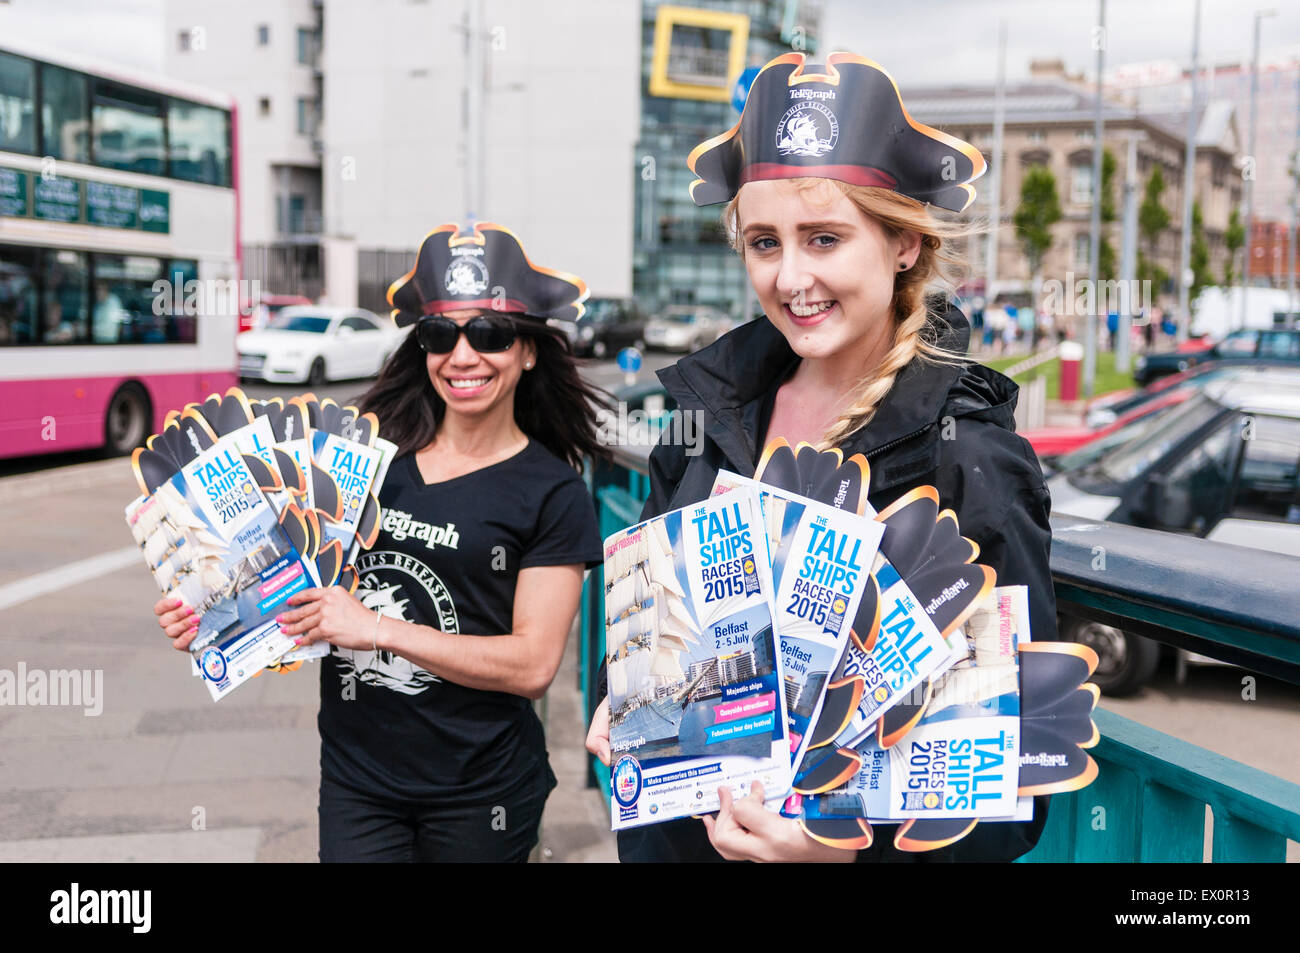 Belfast, Northern Ireland, UK. 03rd July, 2015. Two ladies sell Tall Ships programmes Credit:  Stephen Barnes/Alamy - Stock Image